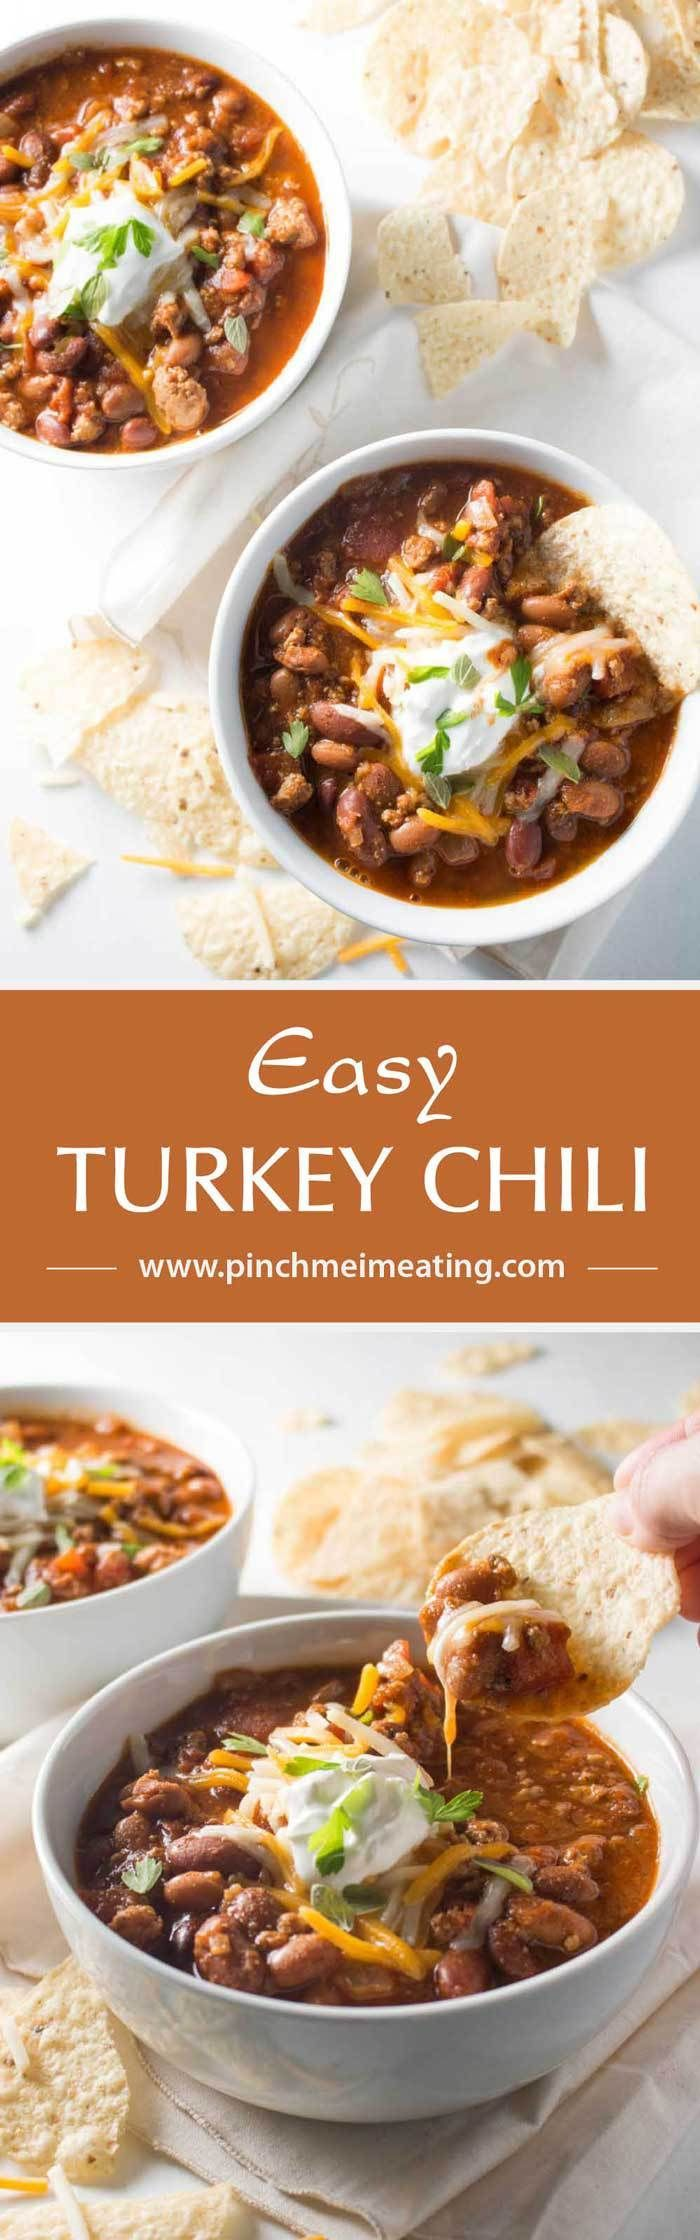 An easy turkey chili that's filling, cozy, and healthy. Perfect for dinner on a busy weeknight, and I only have to wash one pot!   www.pinchmeimeating.com